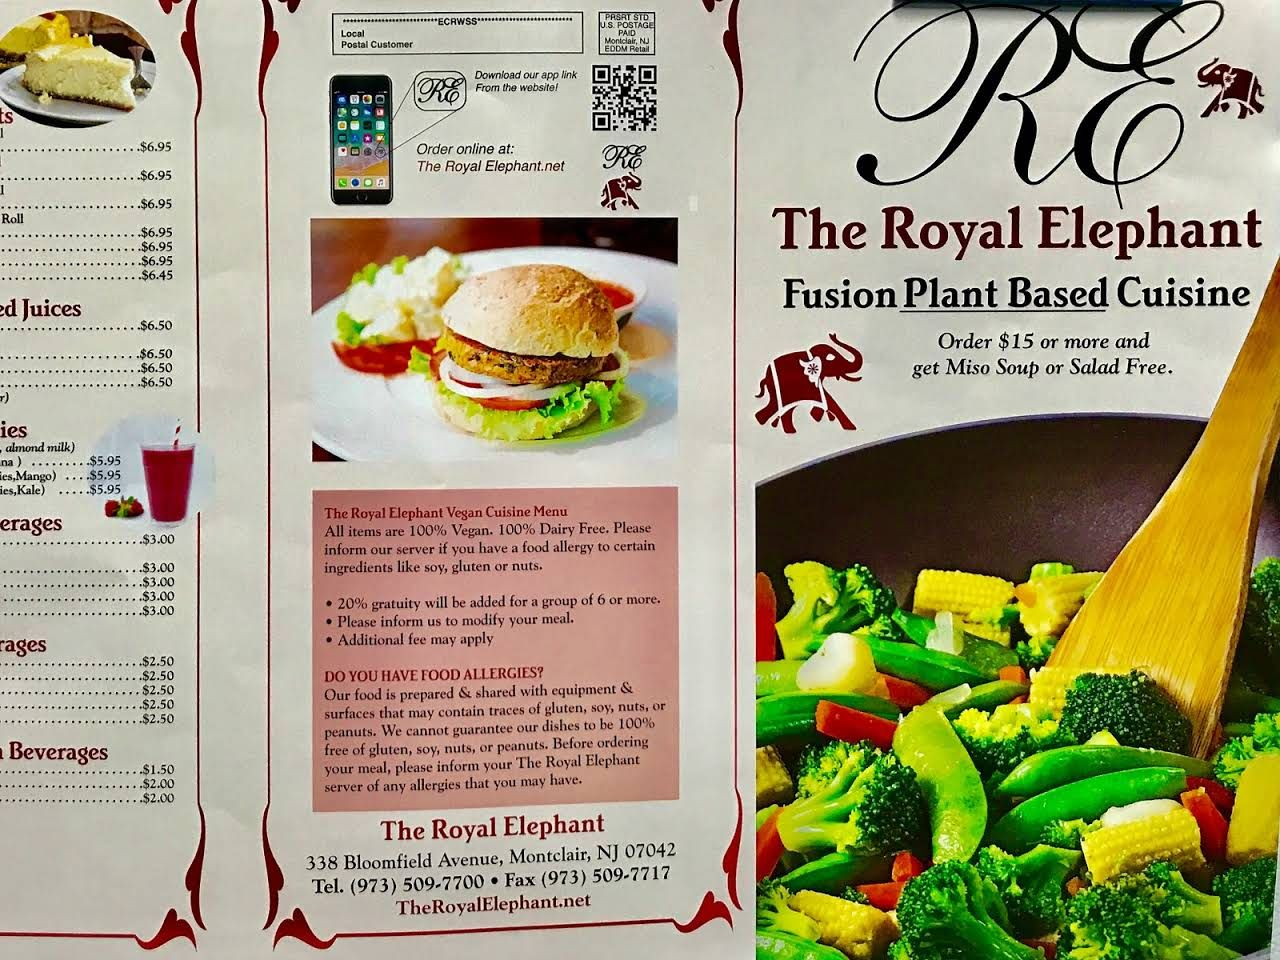 The Royal Elephant Montclair Nj Plant Based Cuisine We Are A 100 Vegan Restaurant Located In New Jersey